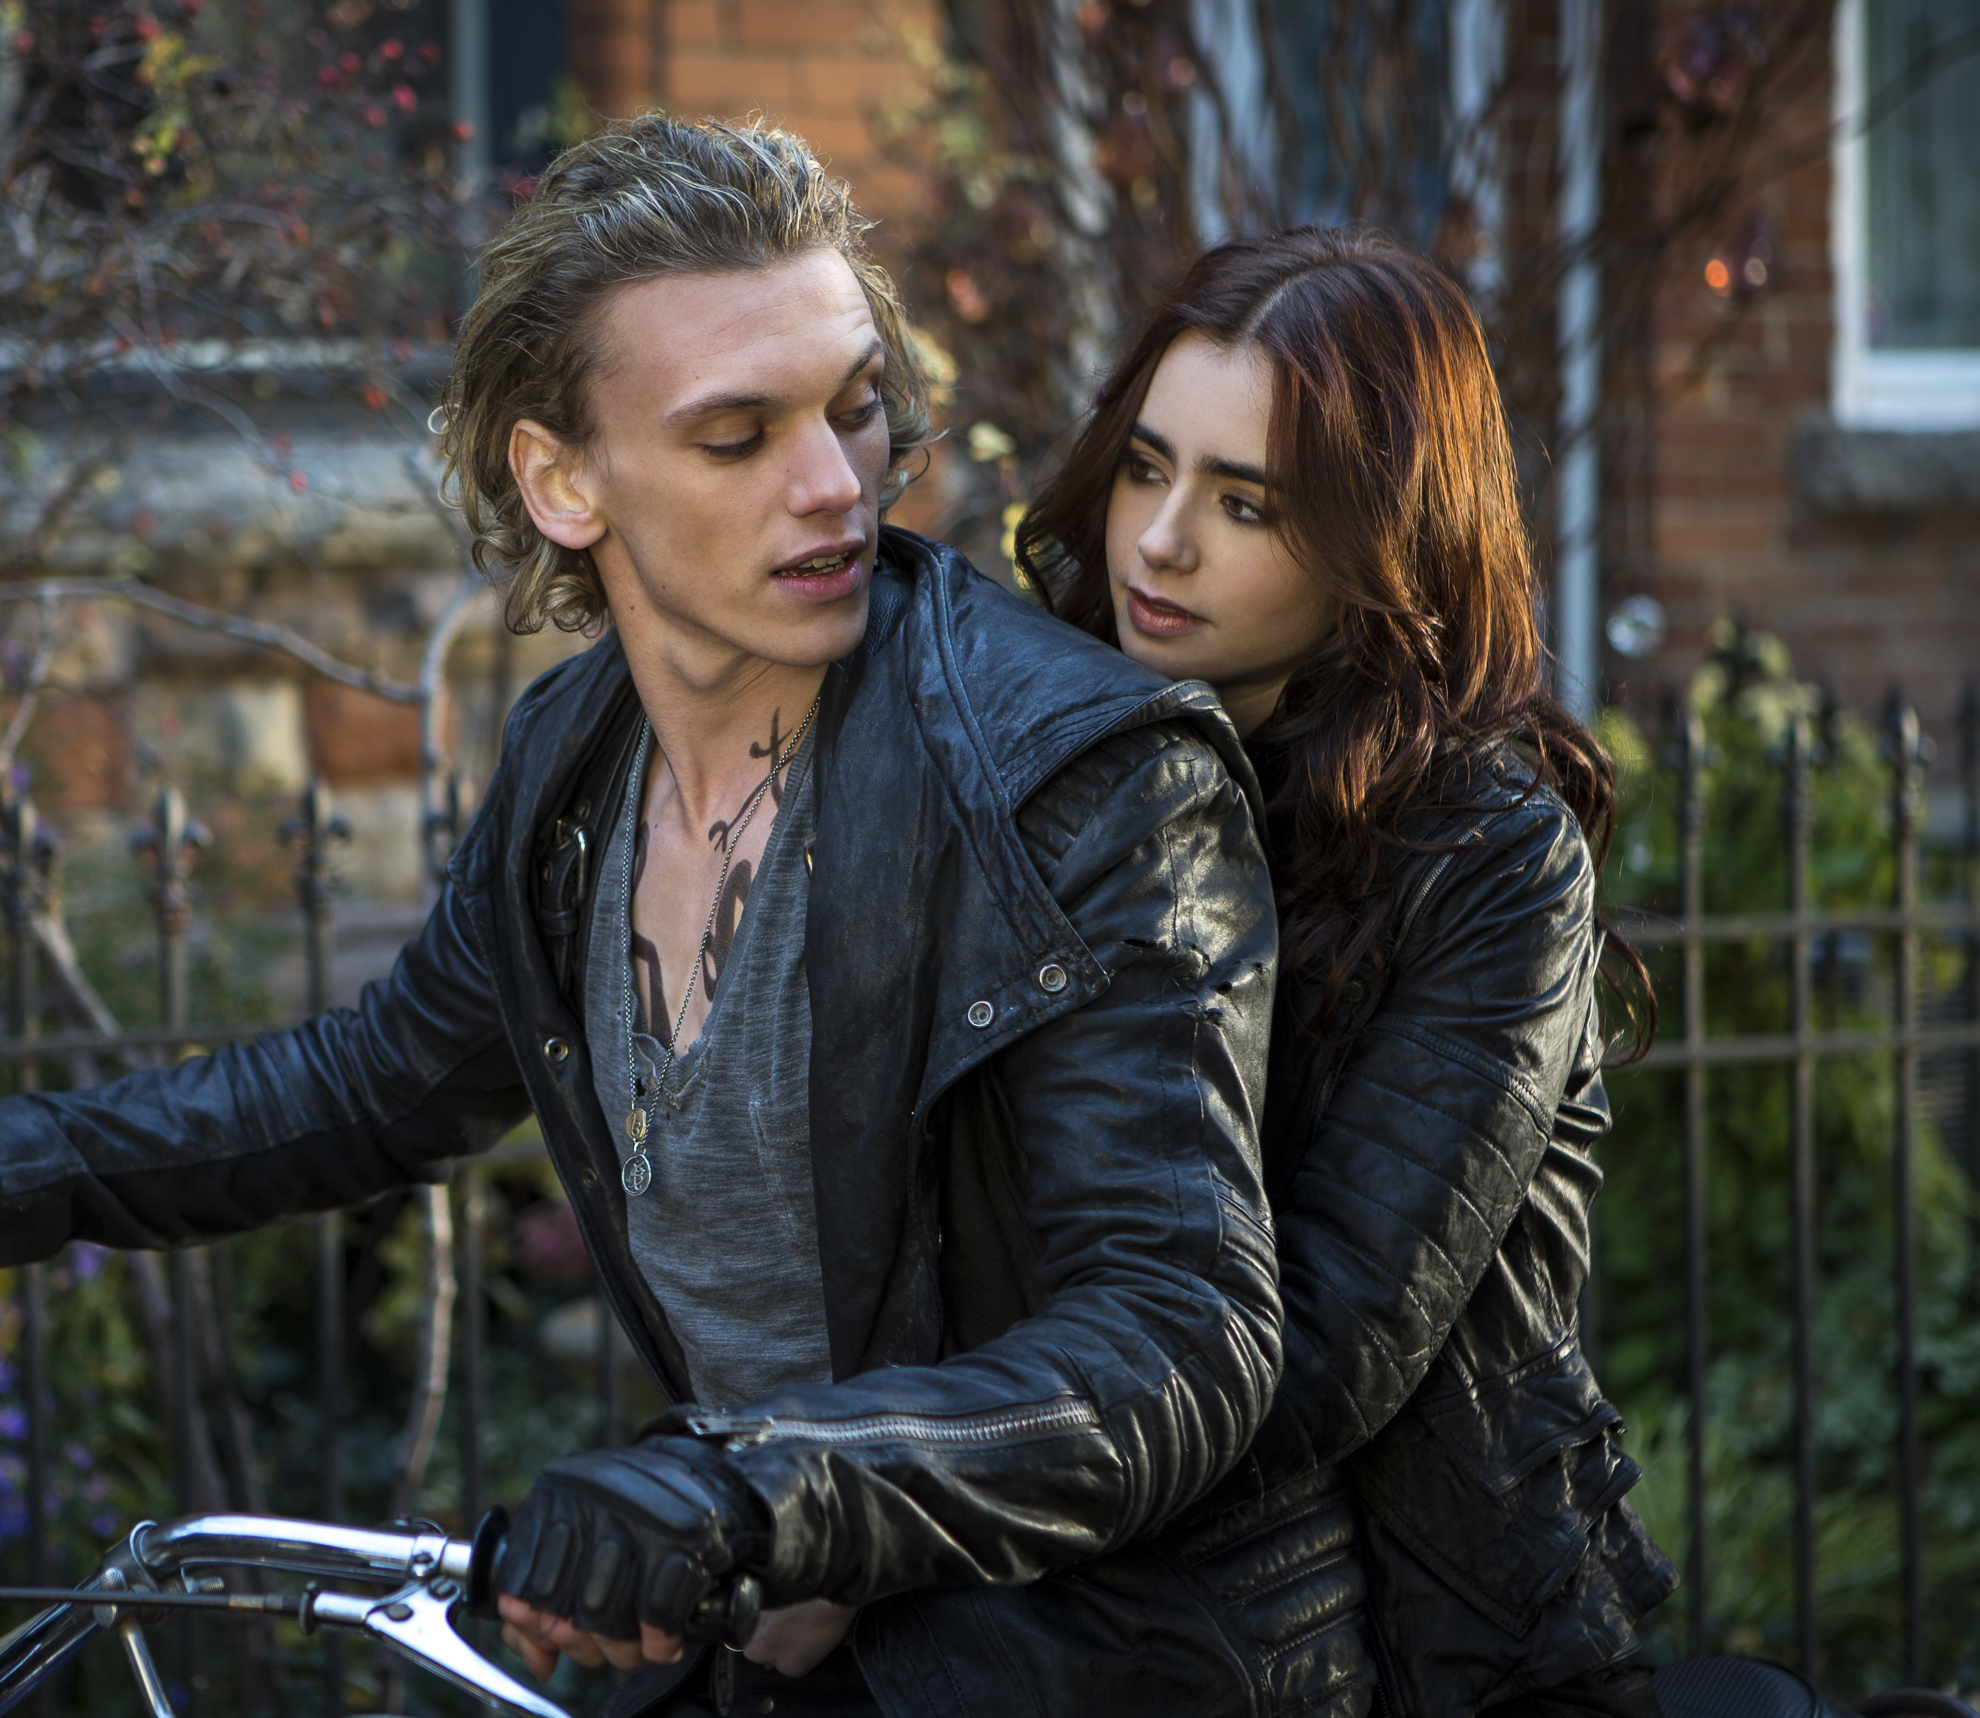 mortal-instruments-lily-collins-jamie-campbell-bower